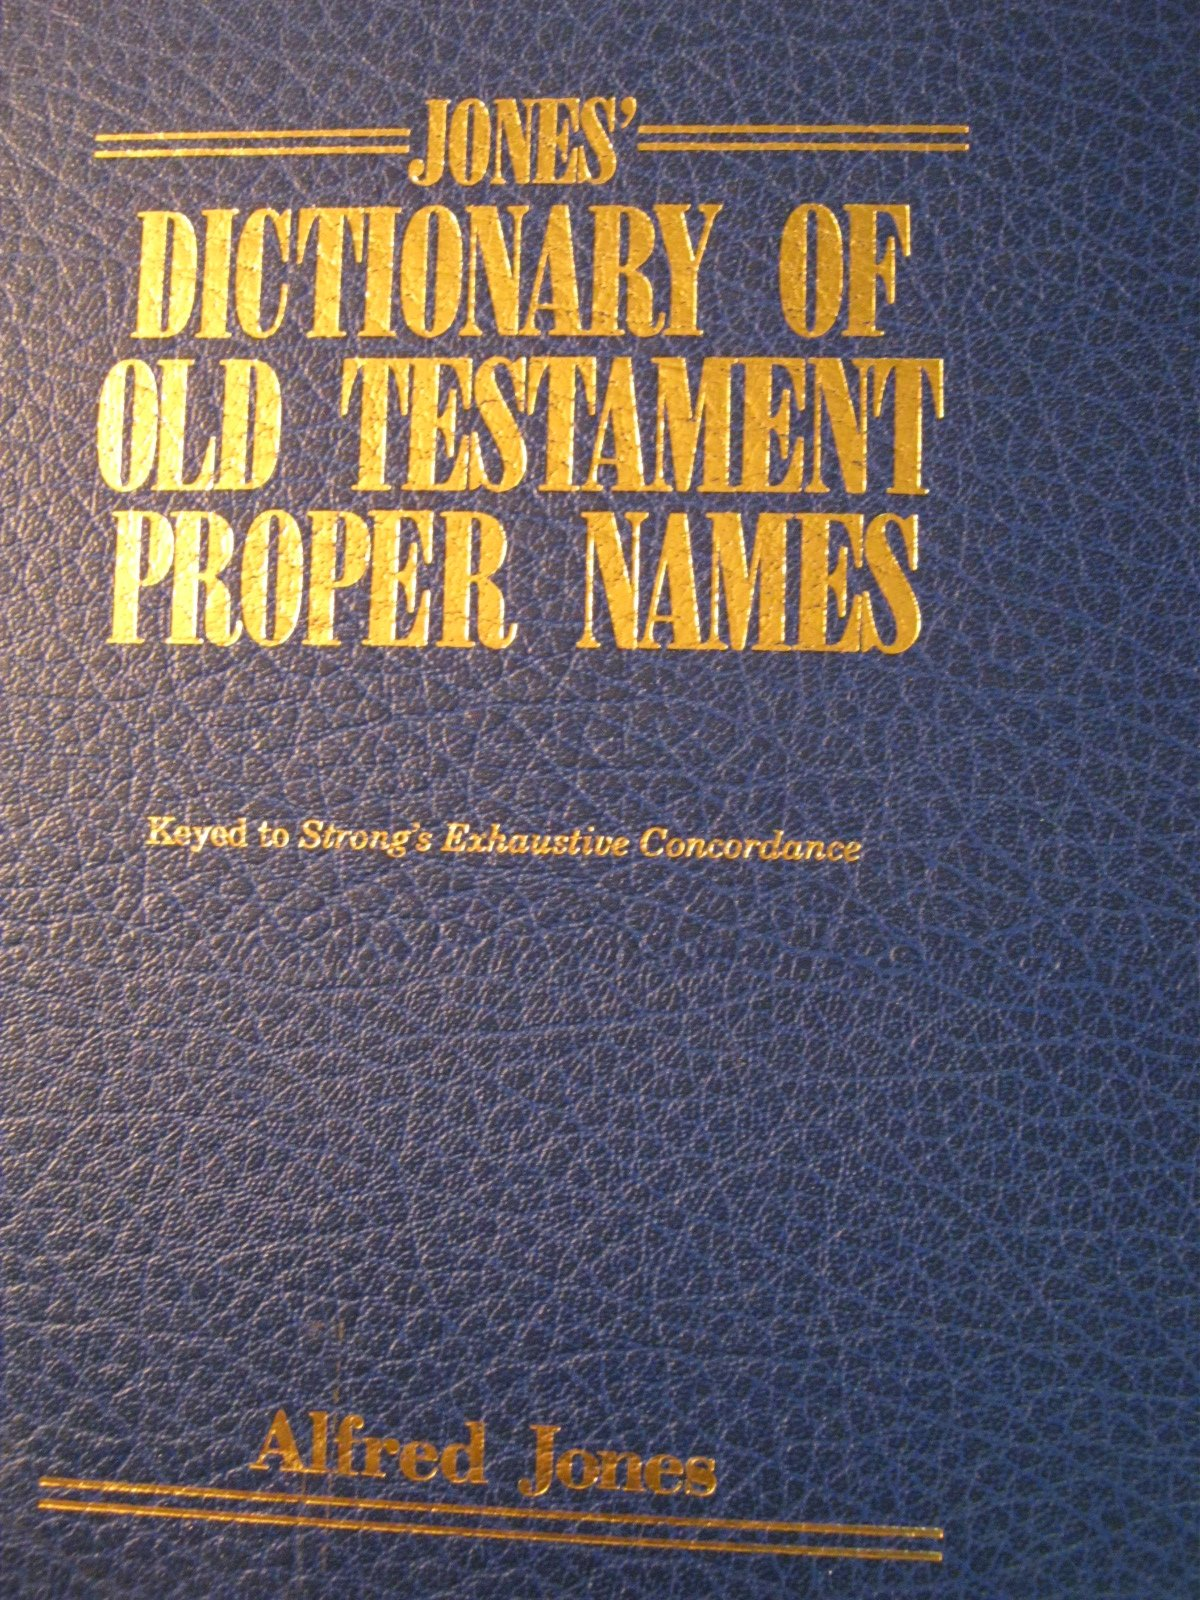 Jones' Dictionary of Old Testament Proper Names (English and Multilingual Edition)